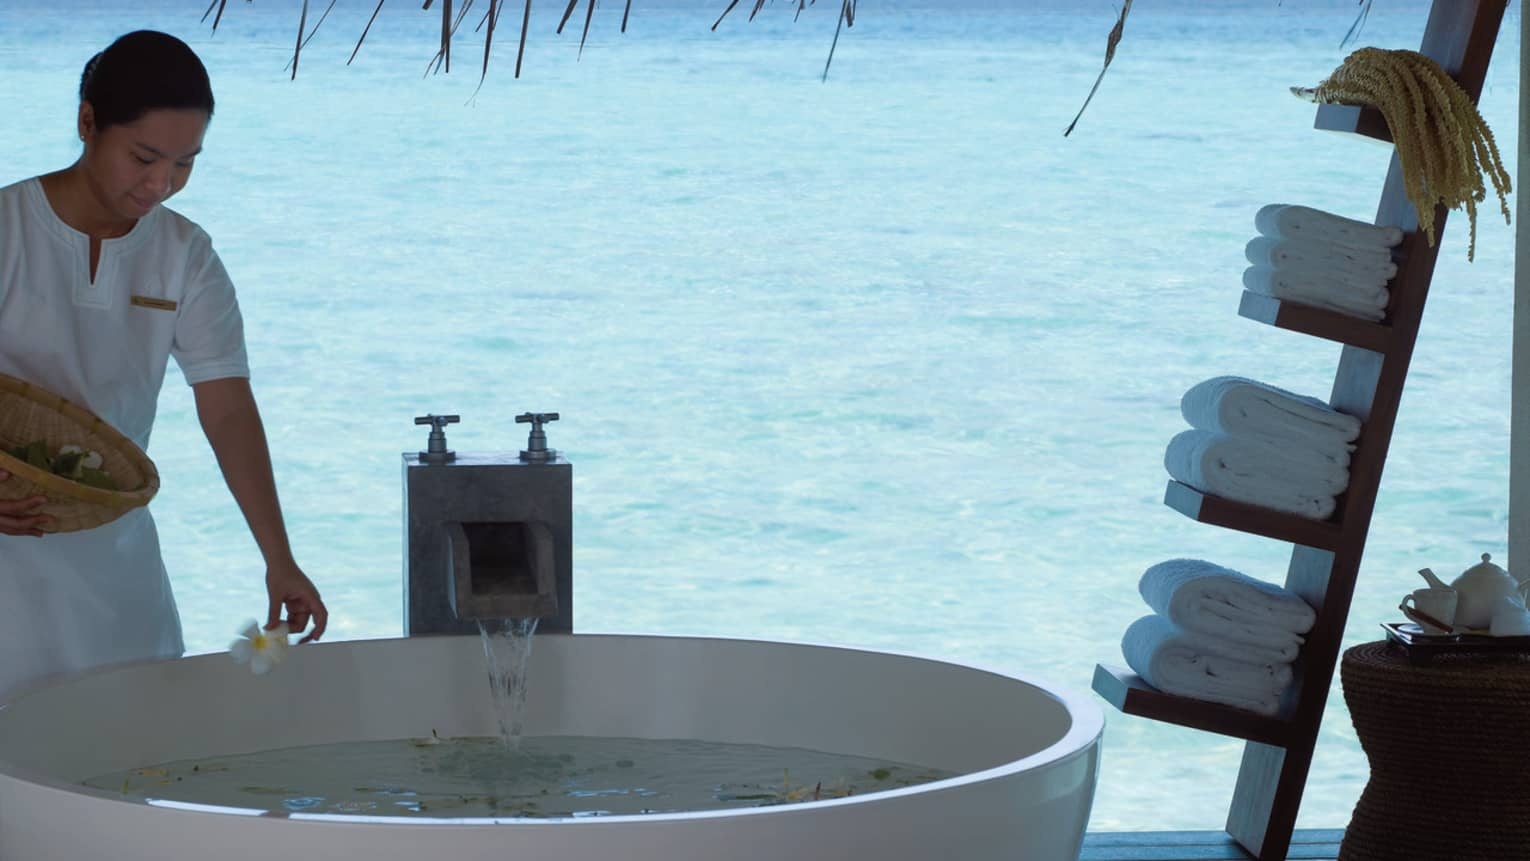 Spa & Ayurvedic Retreat staff places flowers in free standing tub on patio over lagoon